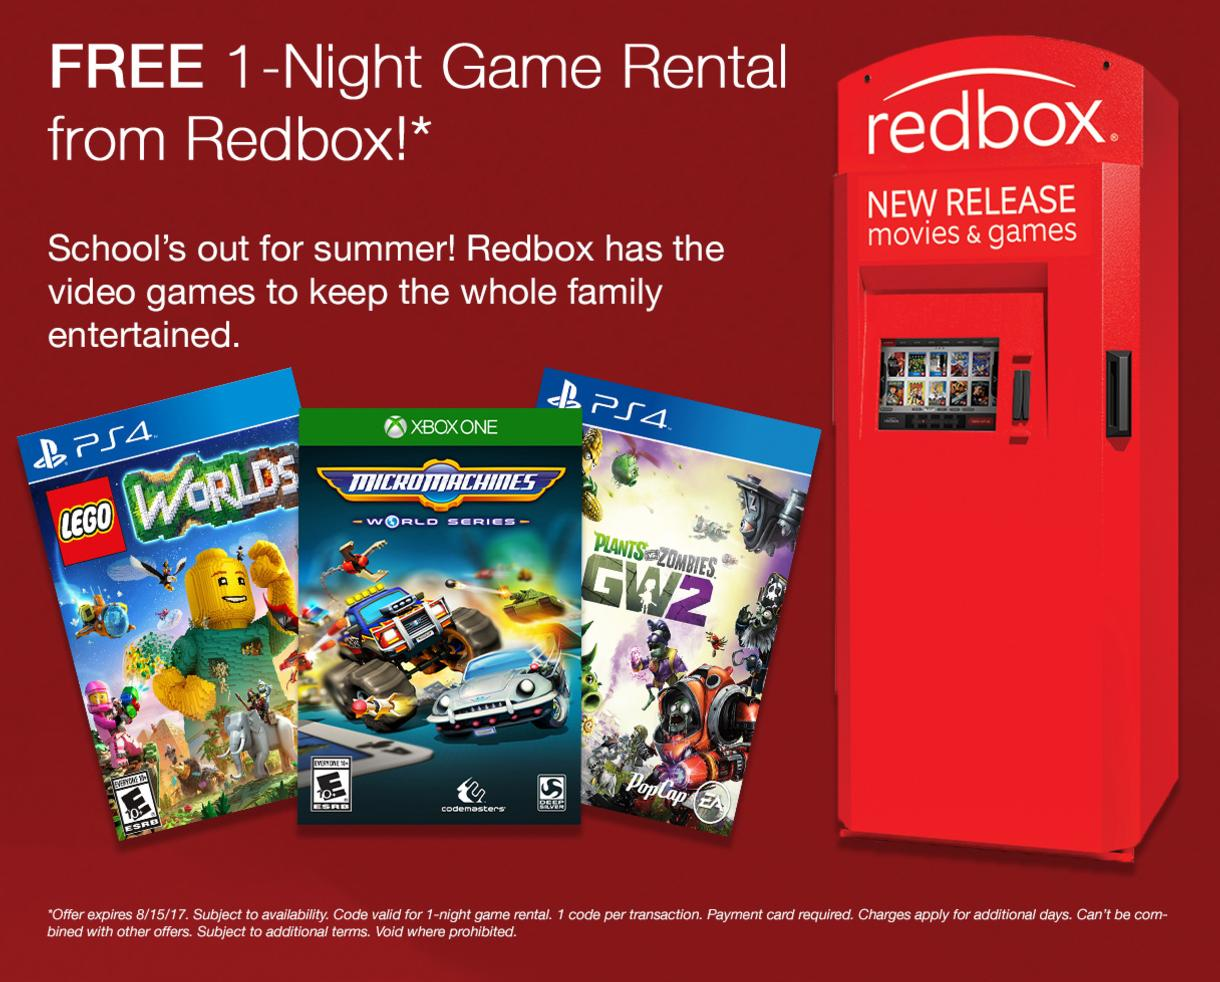 FREE 1-Night Game Rental from Redbox!*